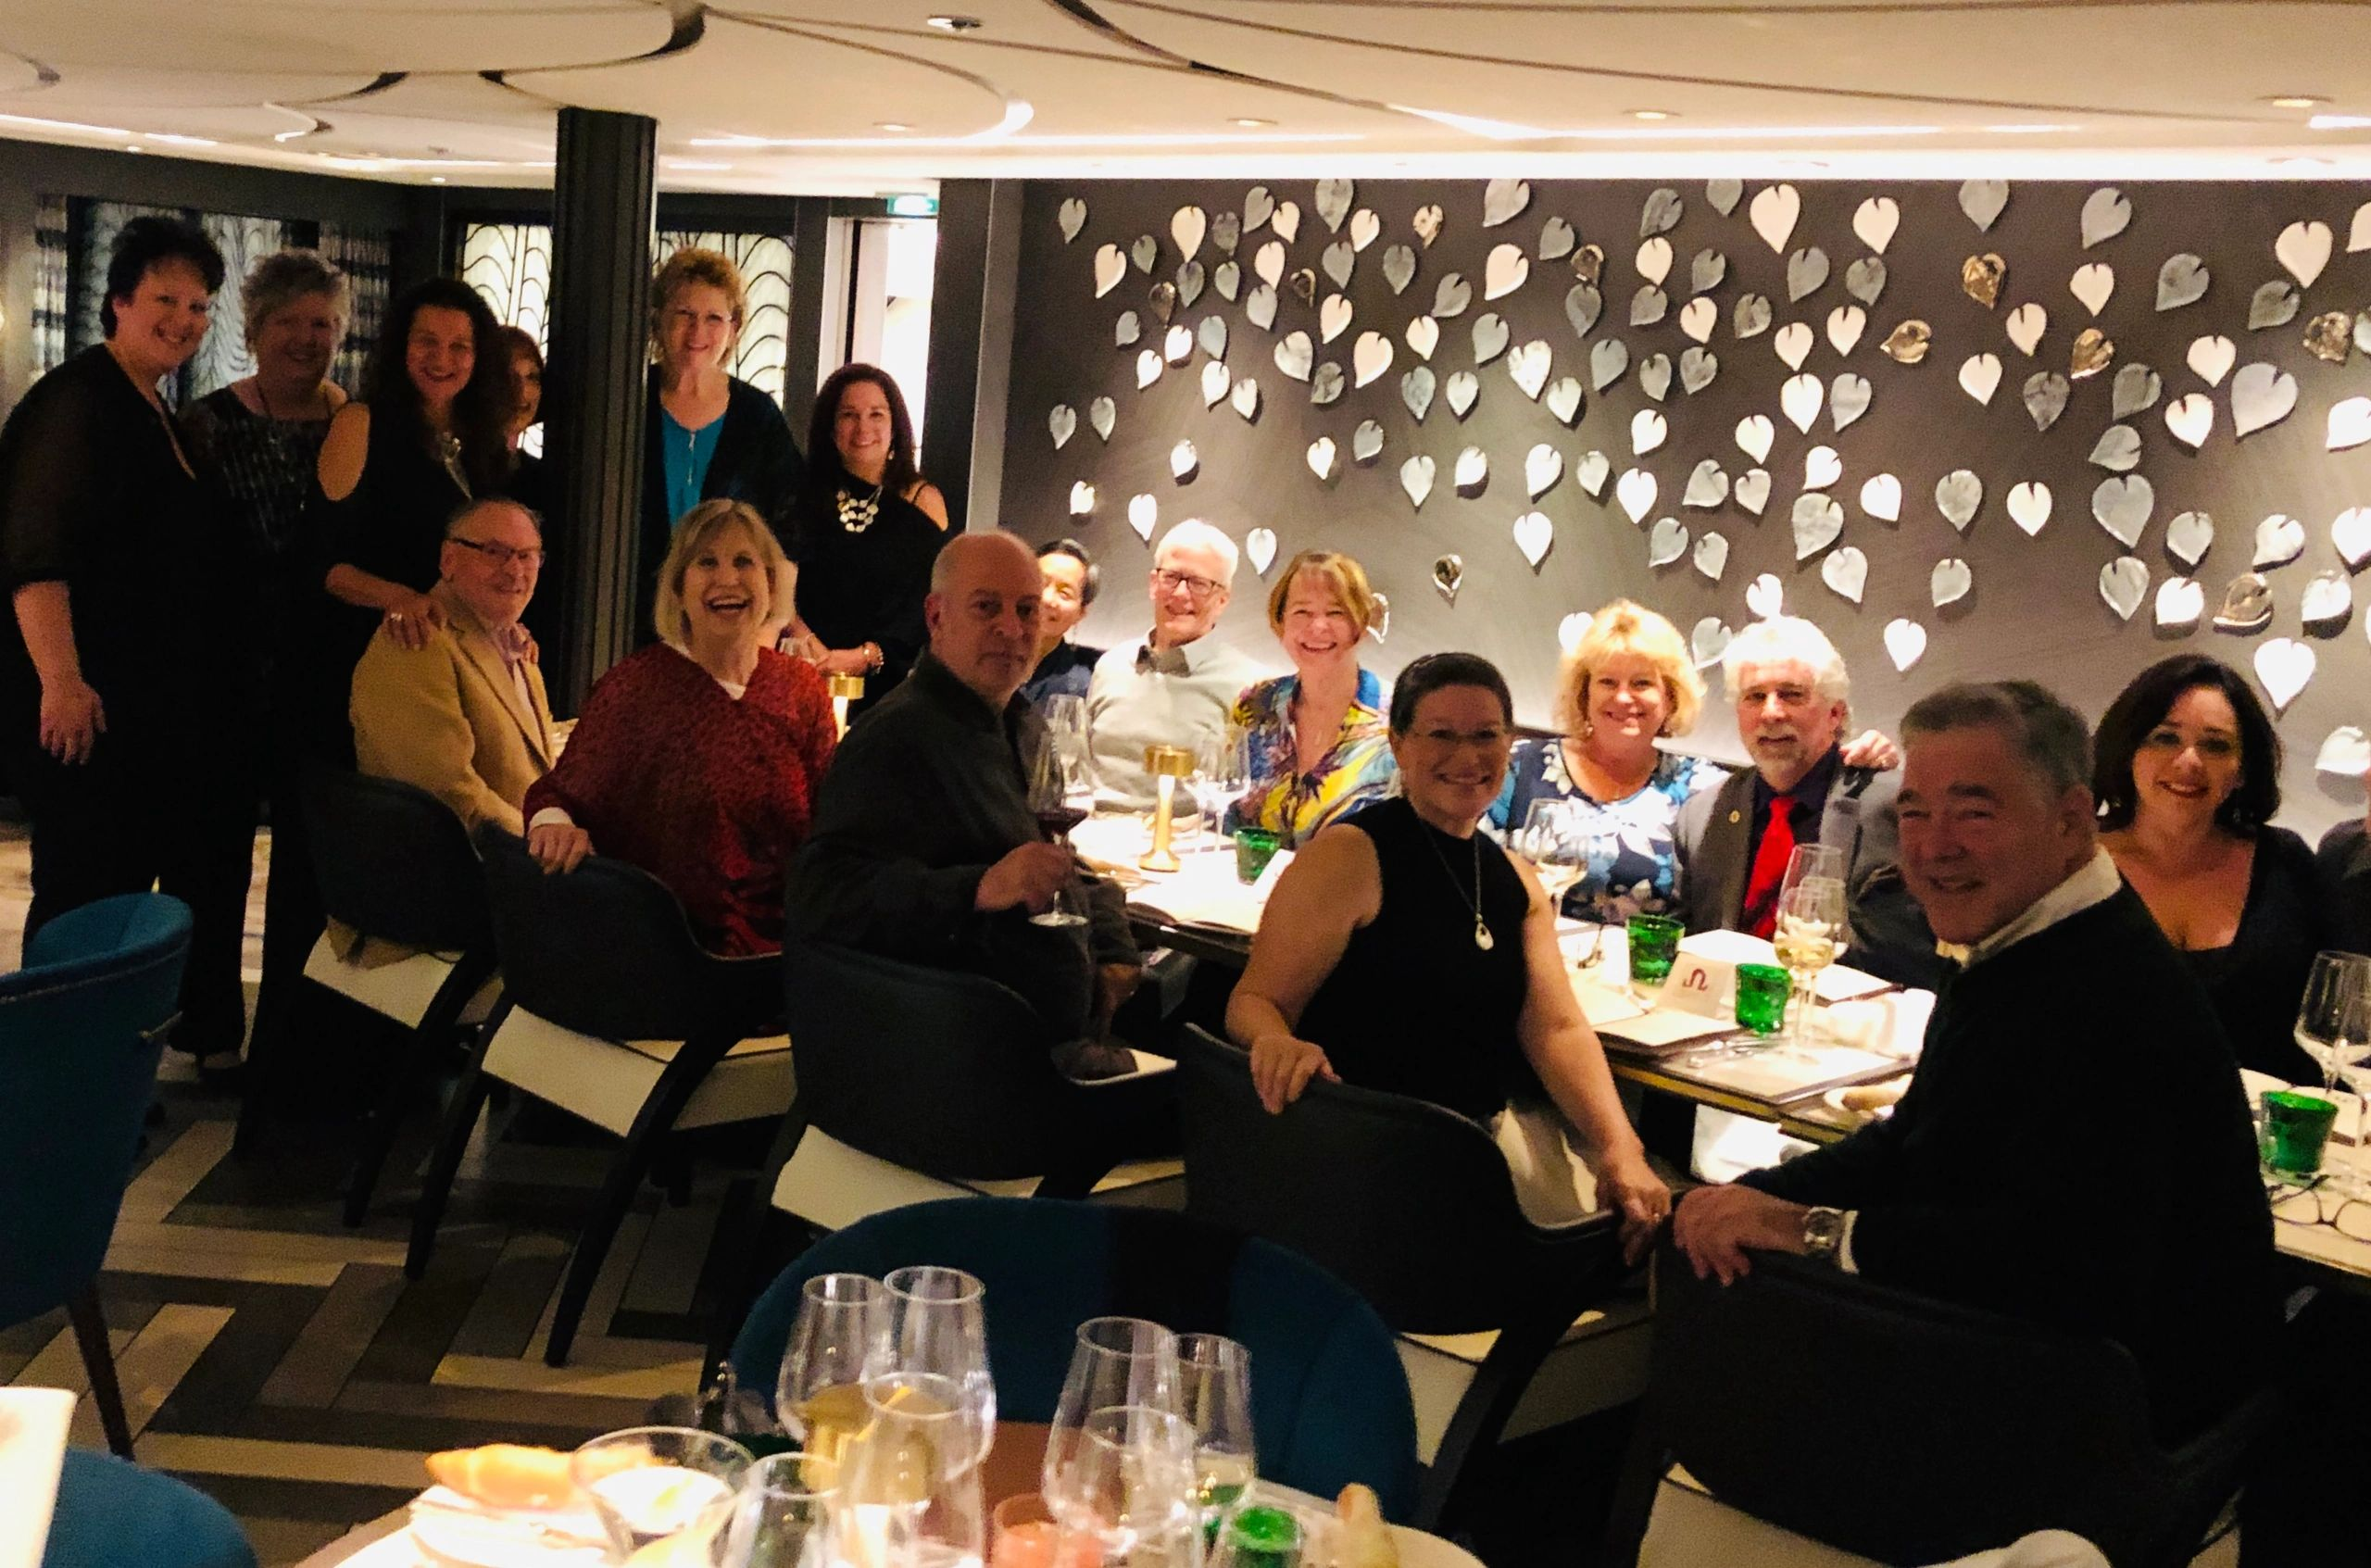 Travel & Wine group celebrating a local California fundraising event.